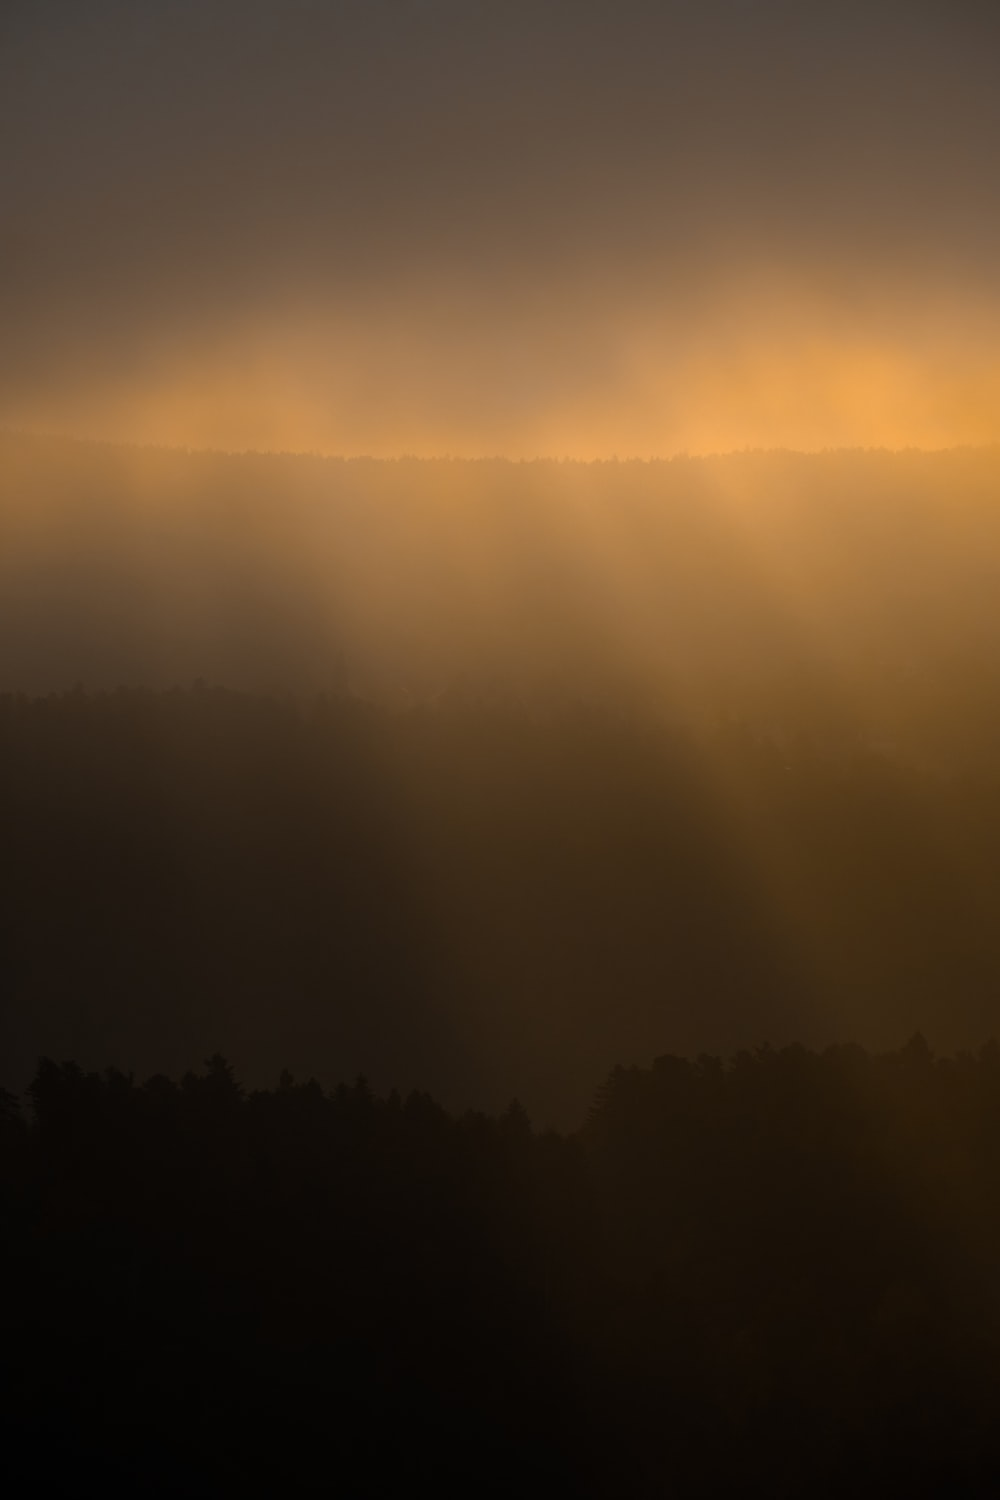 landscape photo of a forest at sunrise